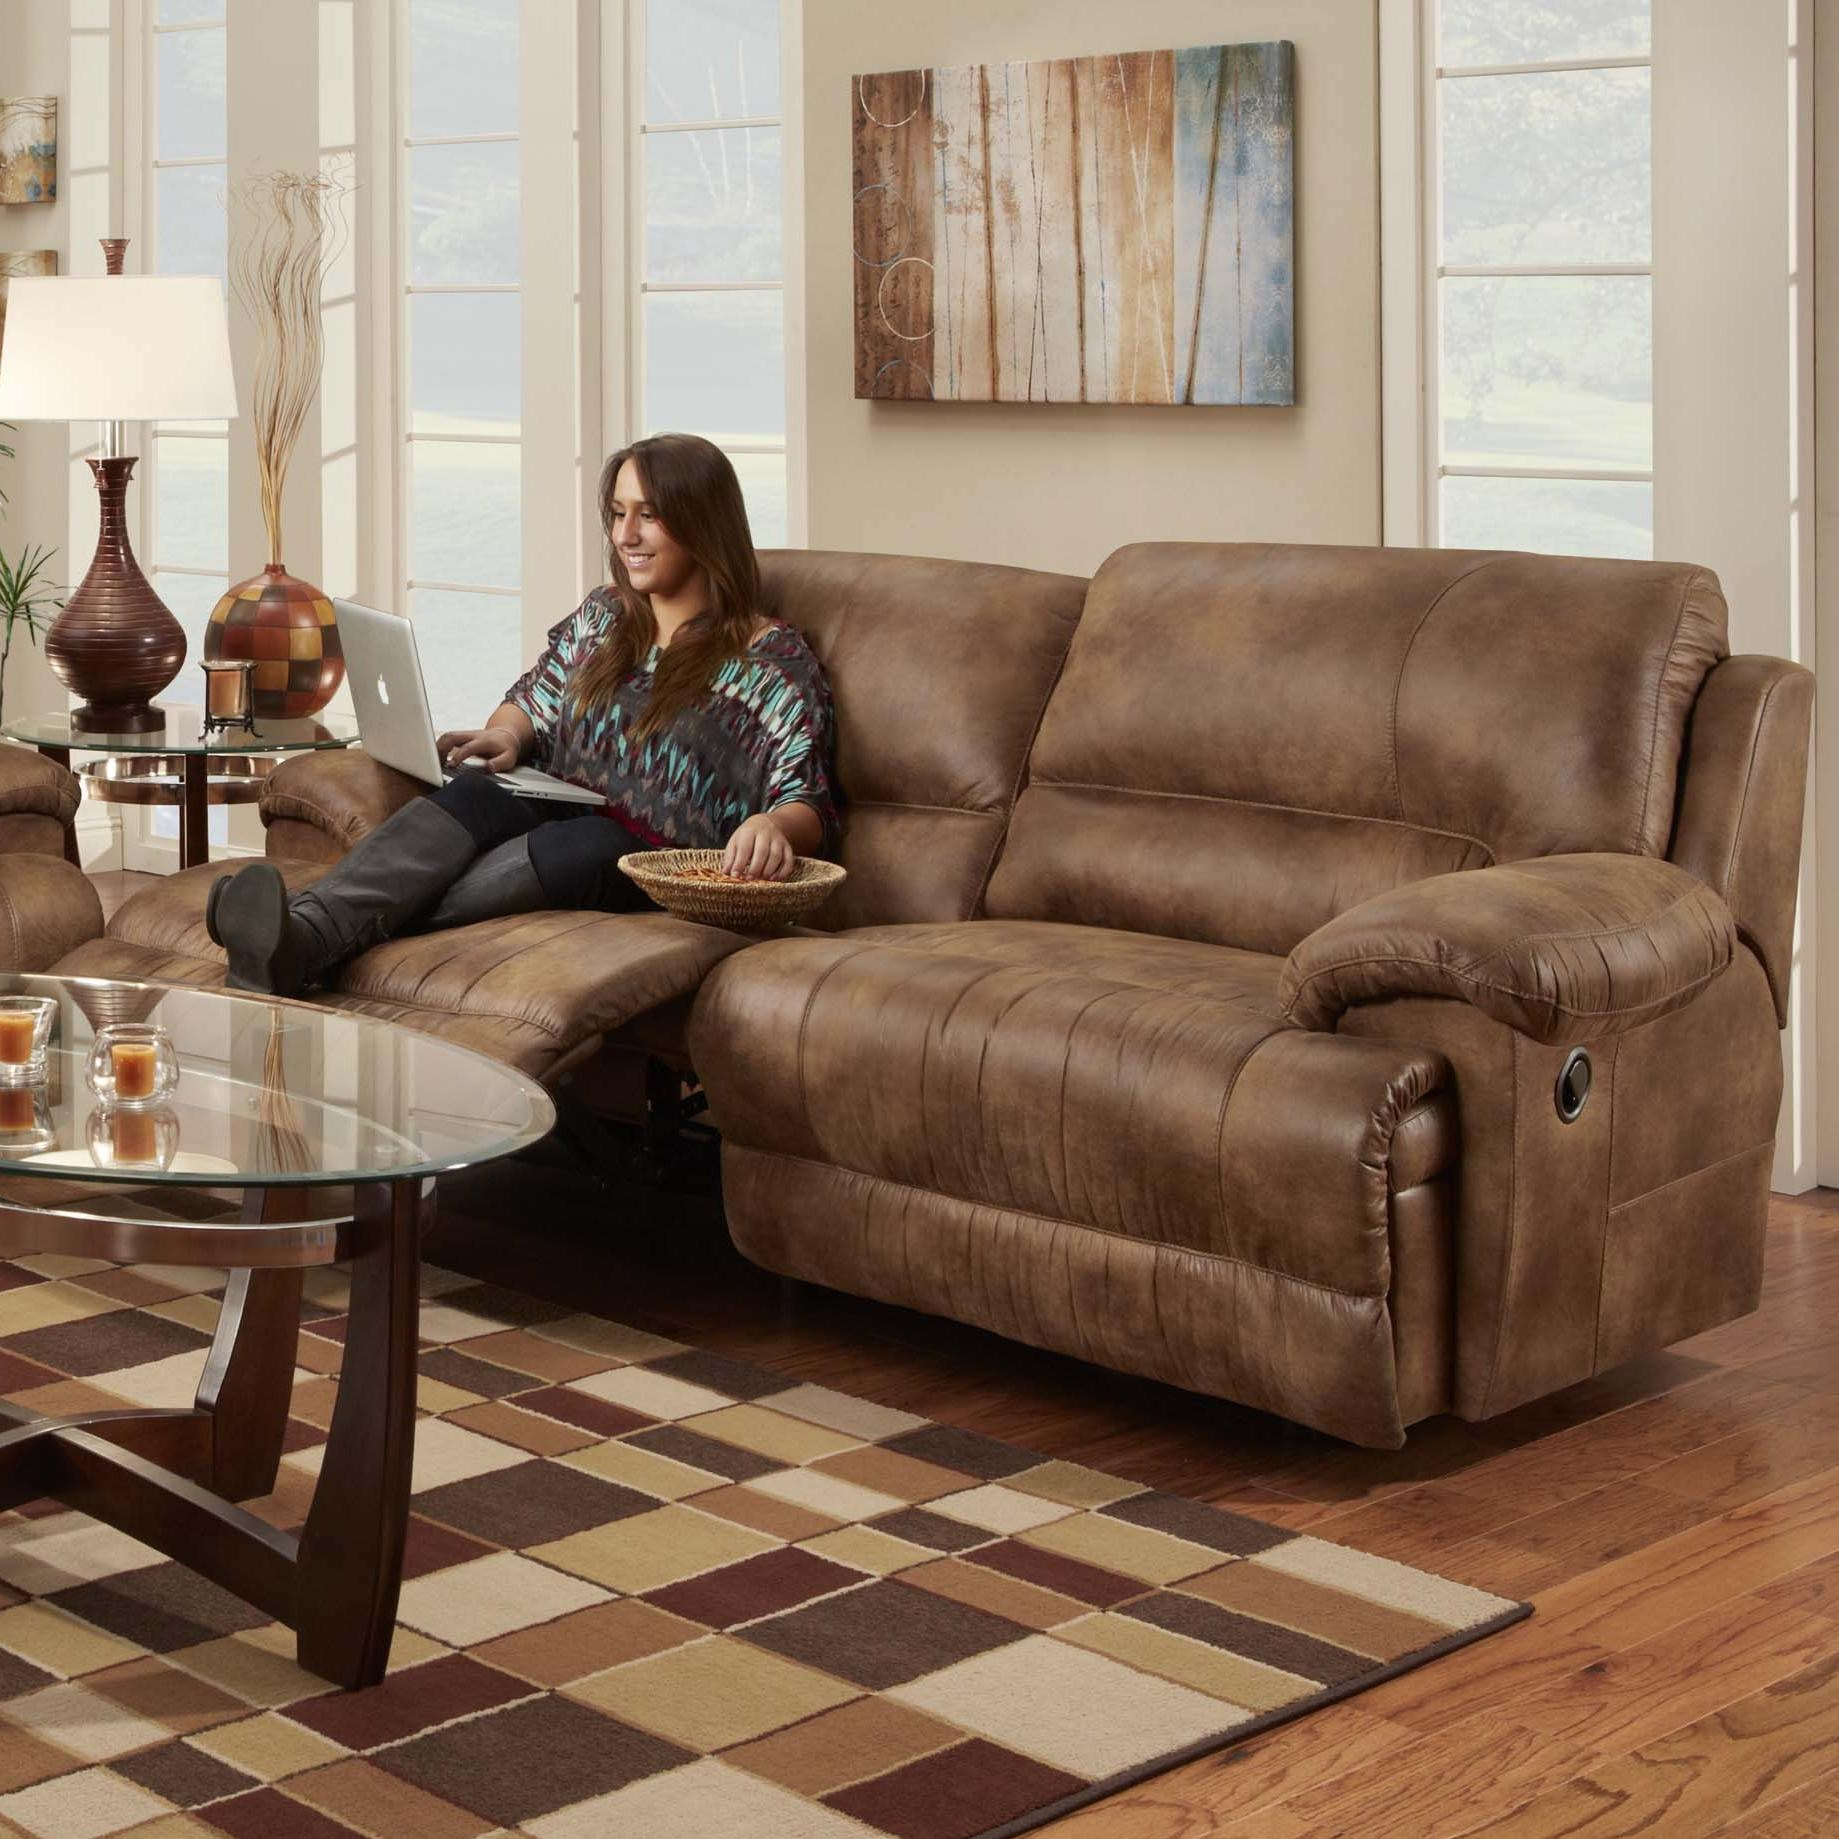 Superieur Franklin CaswellDouble Reclining Two Seat Sofa ...